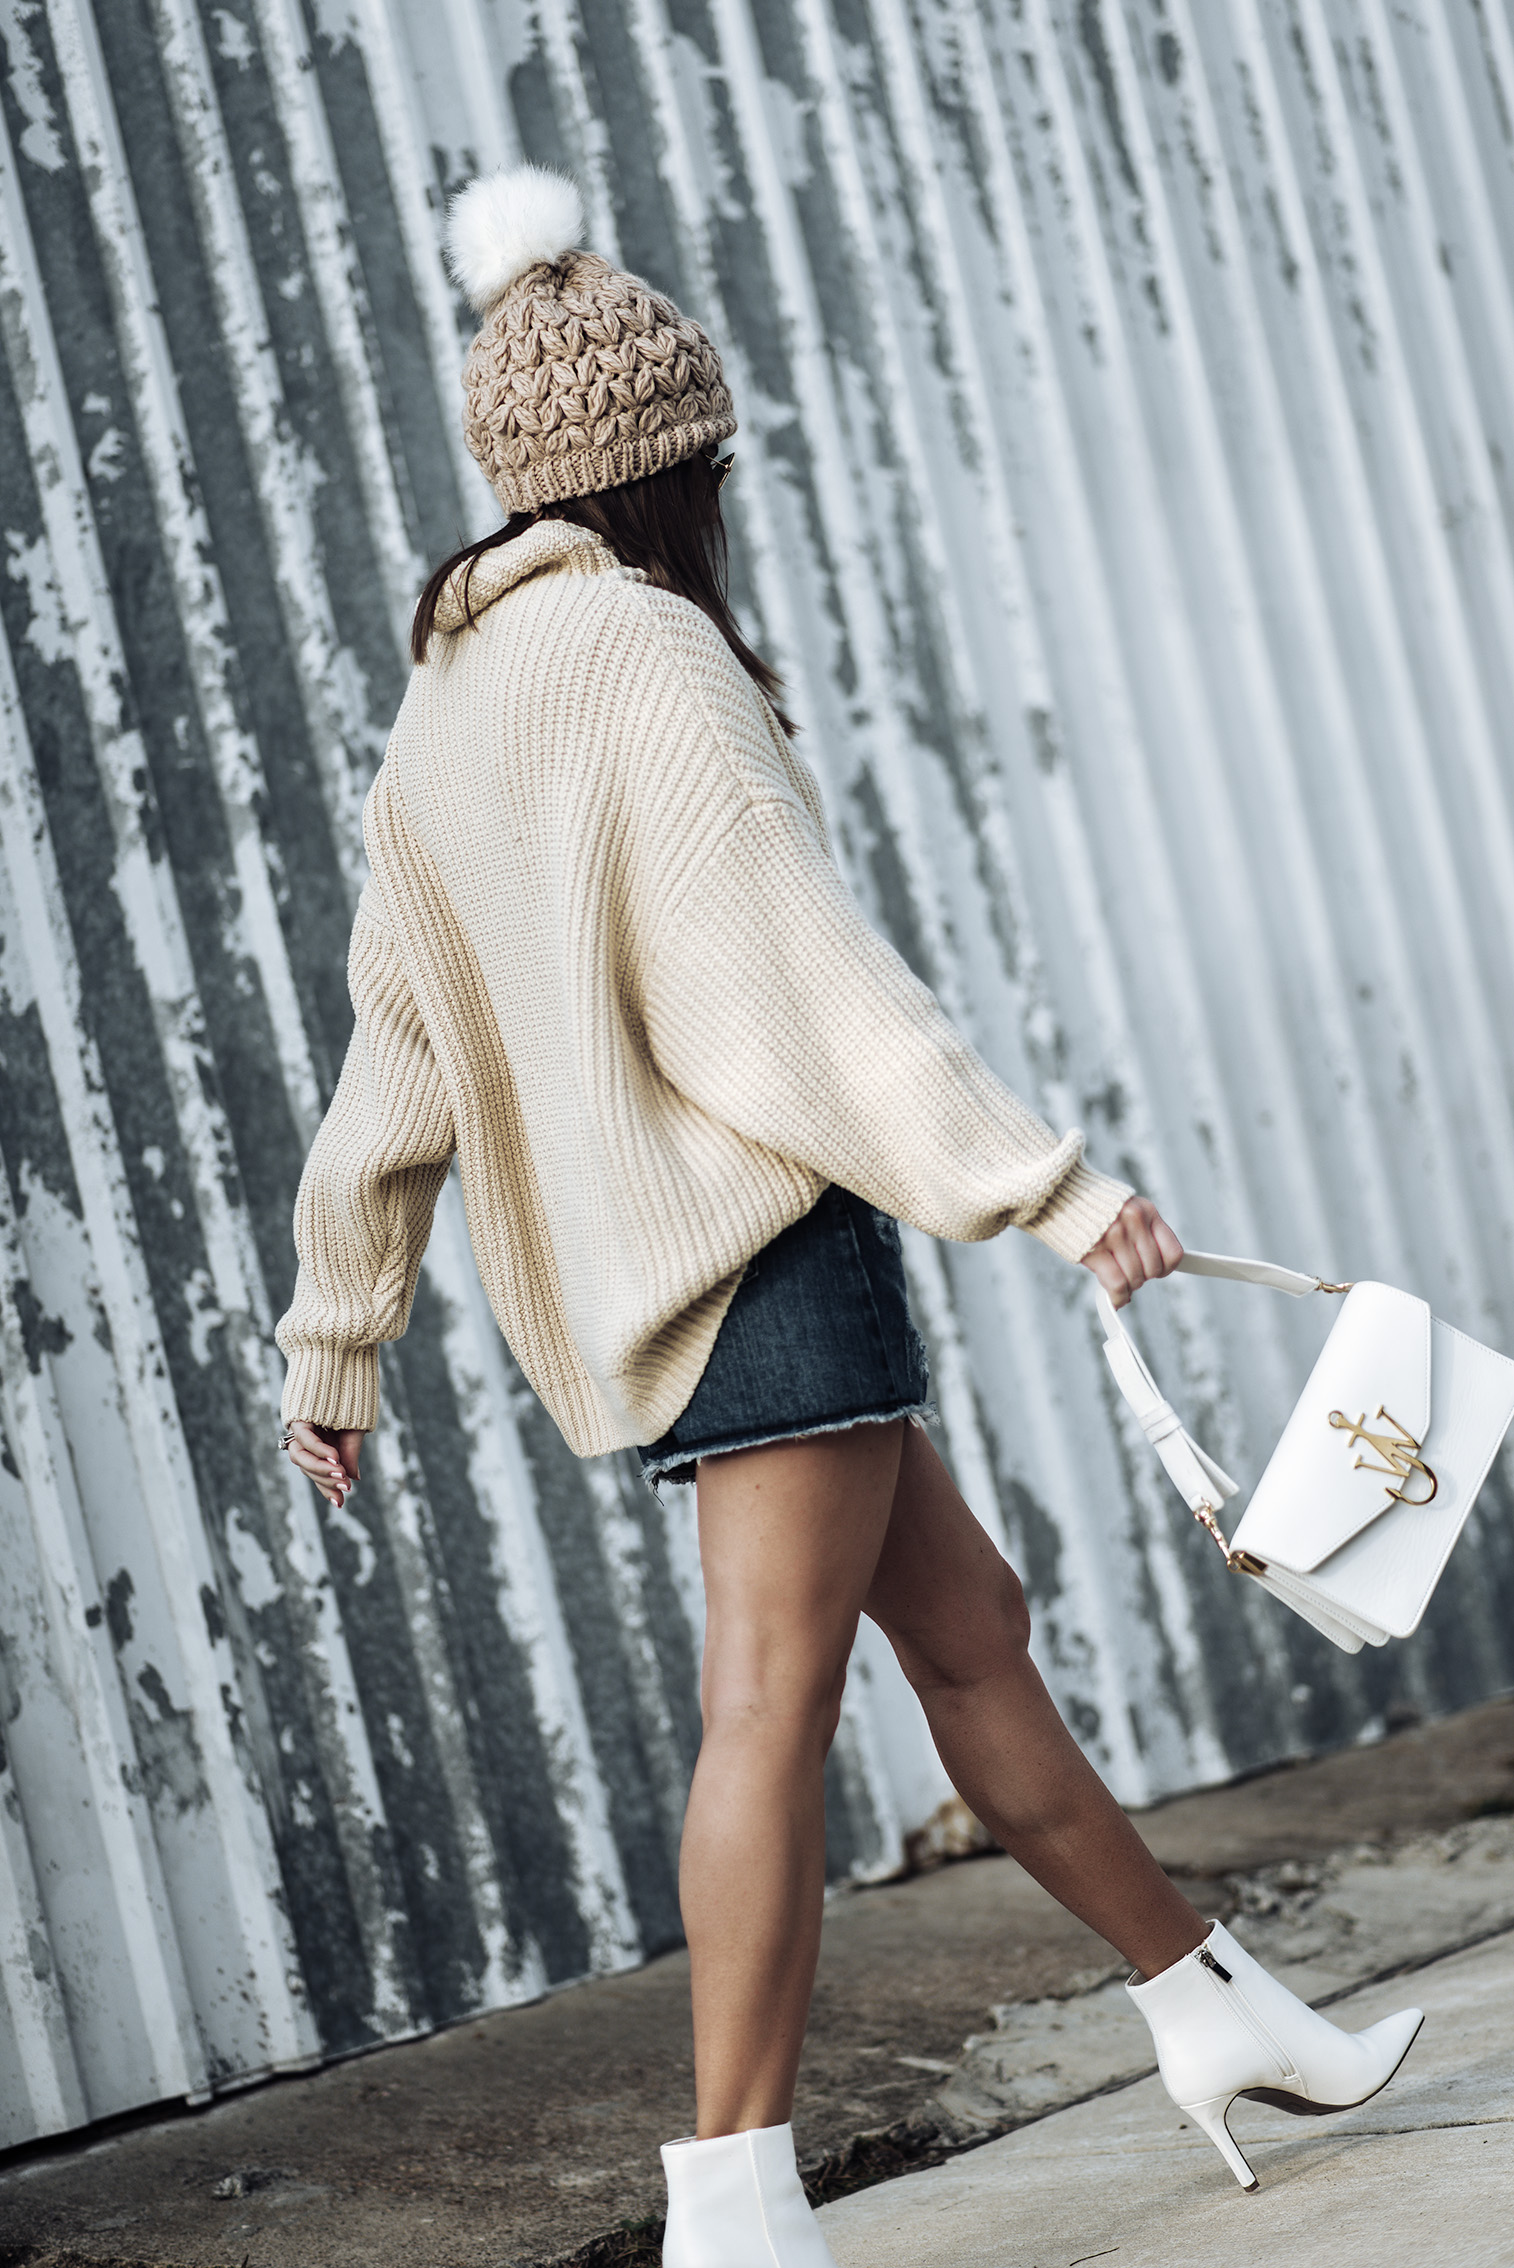 All white accessories  Free People swim too deep sweater   Evidnt denim skirt   White ankle boots (similar)   Pom pom beanie (this years version)   J.W. Anderson logo bag in white  Tiffany Jais fashion and lifestyle blogger of Flaunt and Center   Houston fashion blogger   Straw handbag Trend   Streetstyle blog #streetstyle #sweateroutfits #denimskirtoutfits #falloutfits2017 #falloutfits